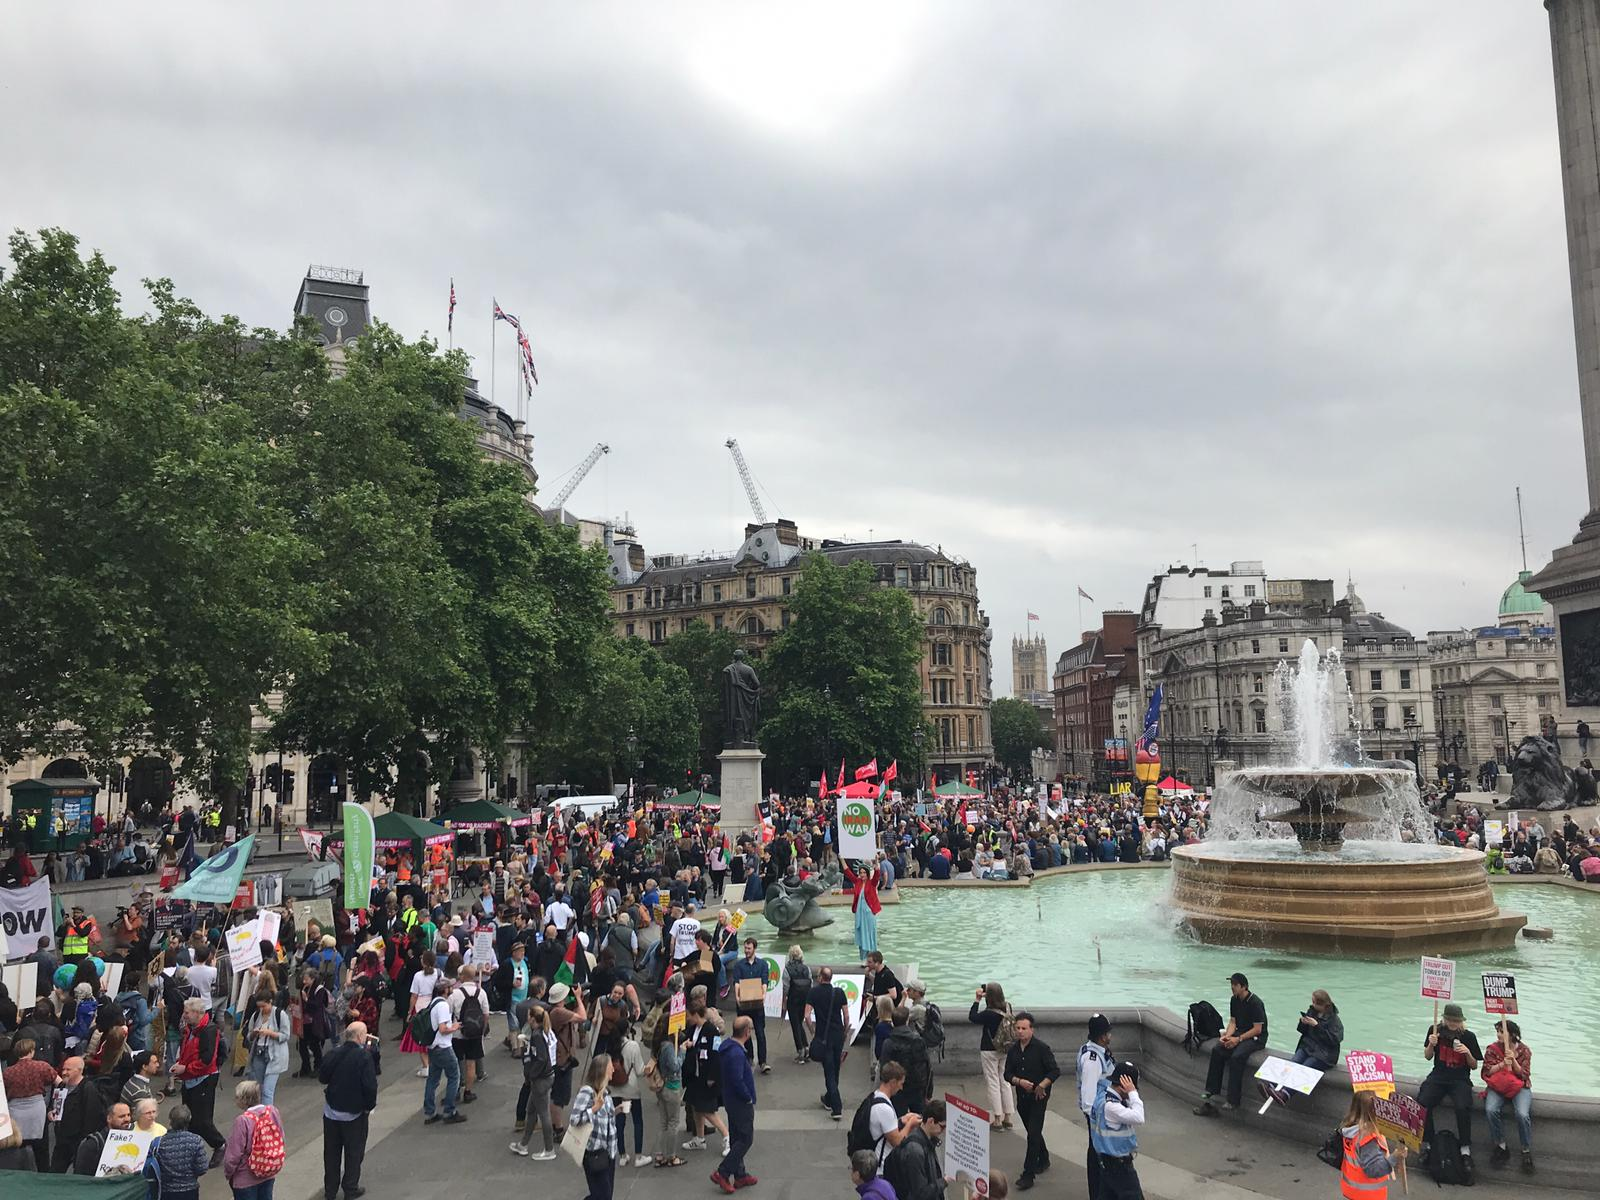 Protesters start to assemble in Trafalgar Square.